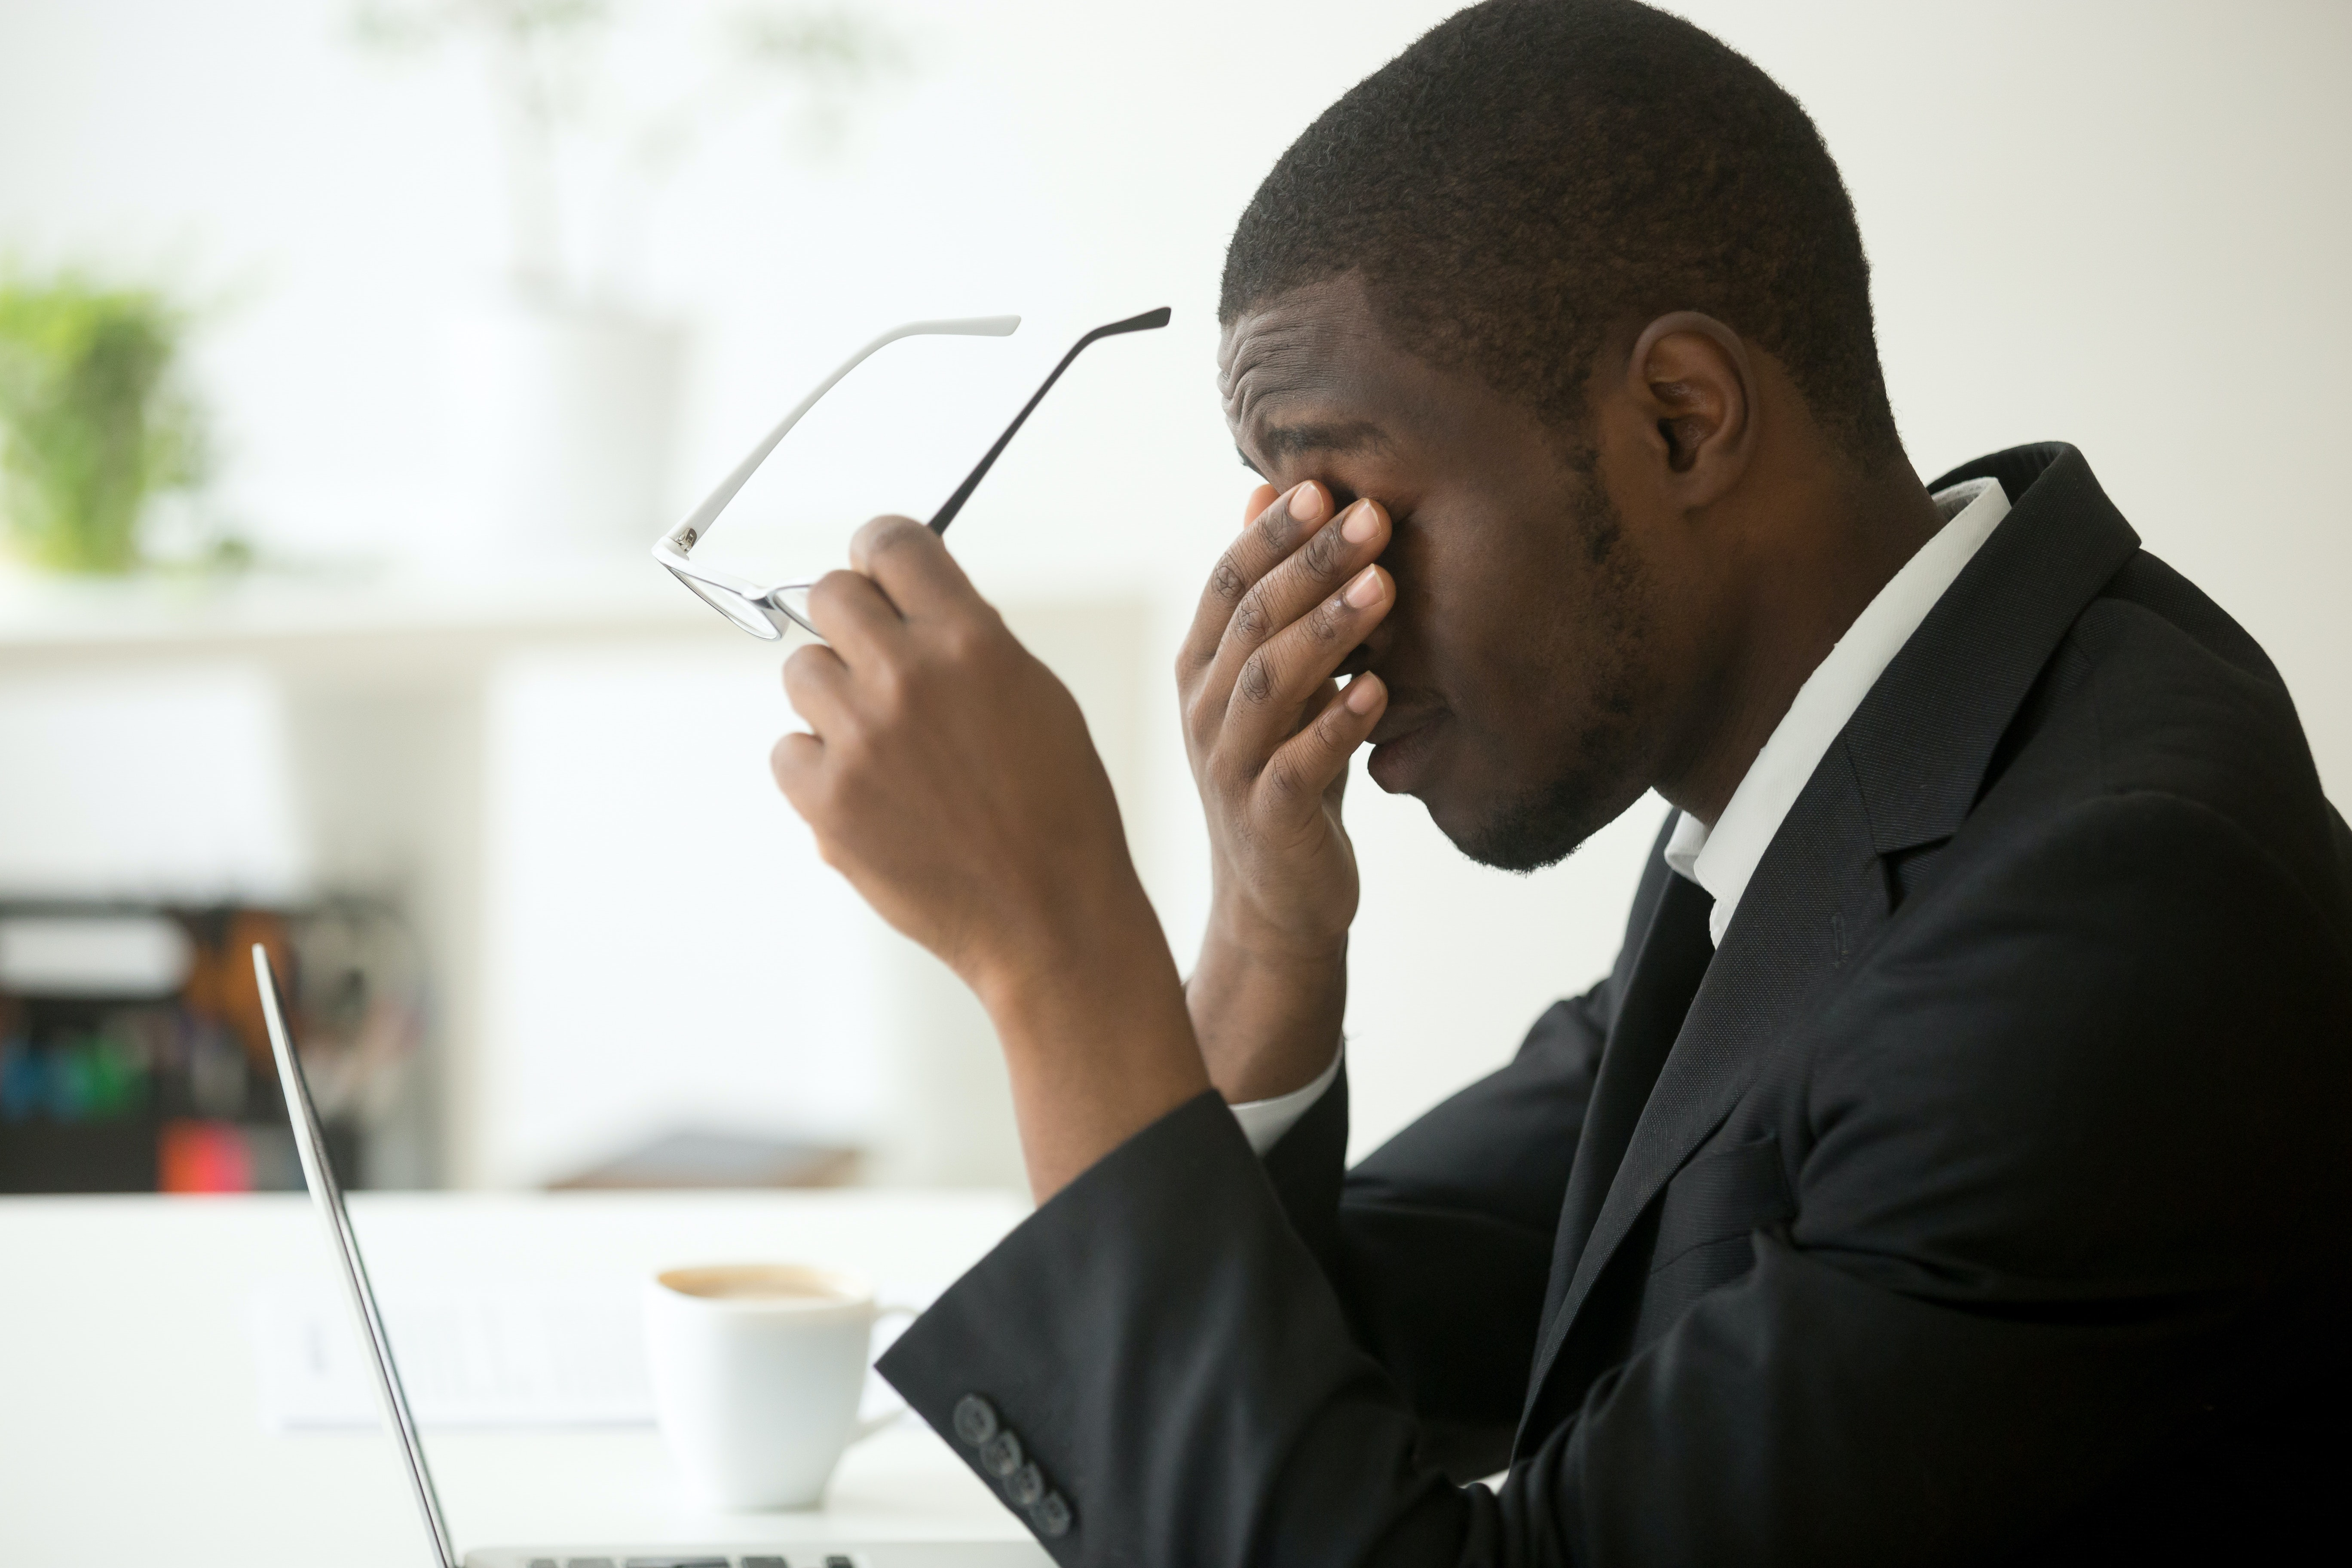 An image depicting a person suffering from chronic fatigue syndrome symptoms